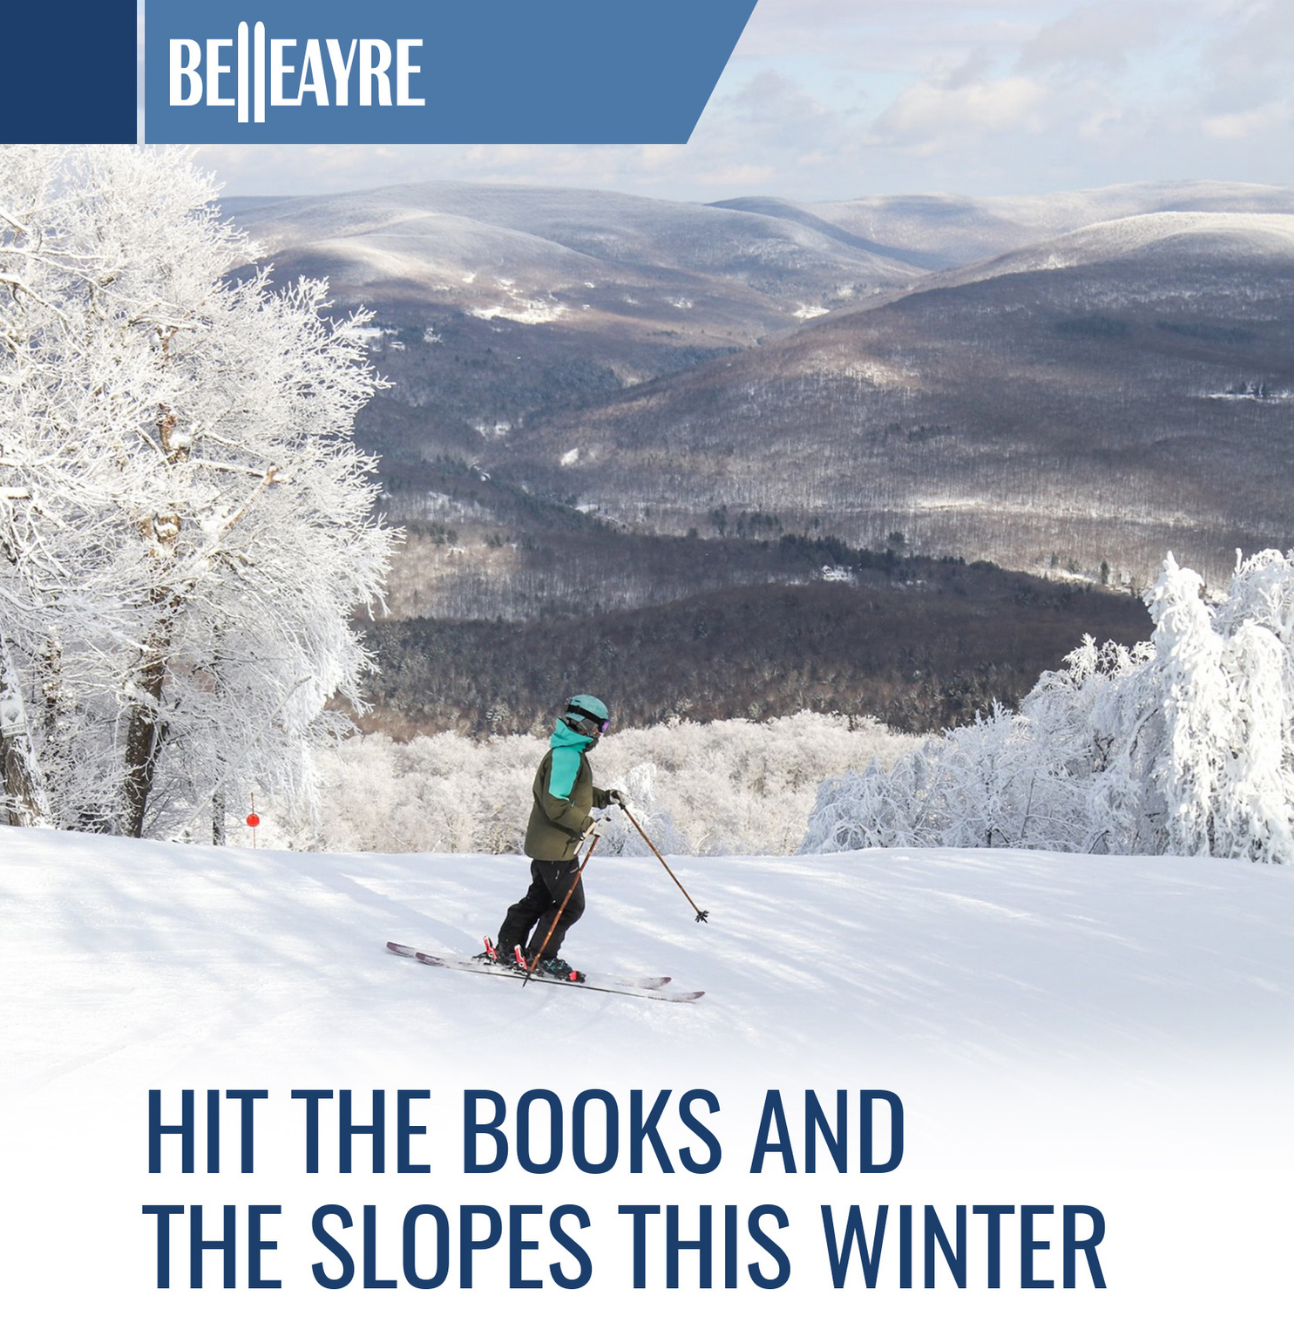 Hit the books and the slopes this winter